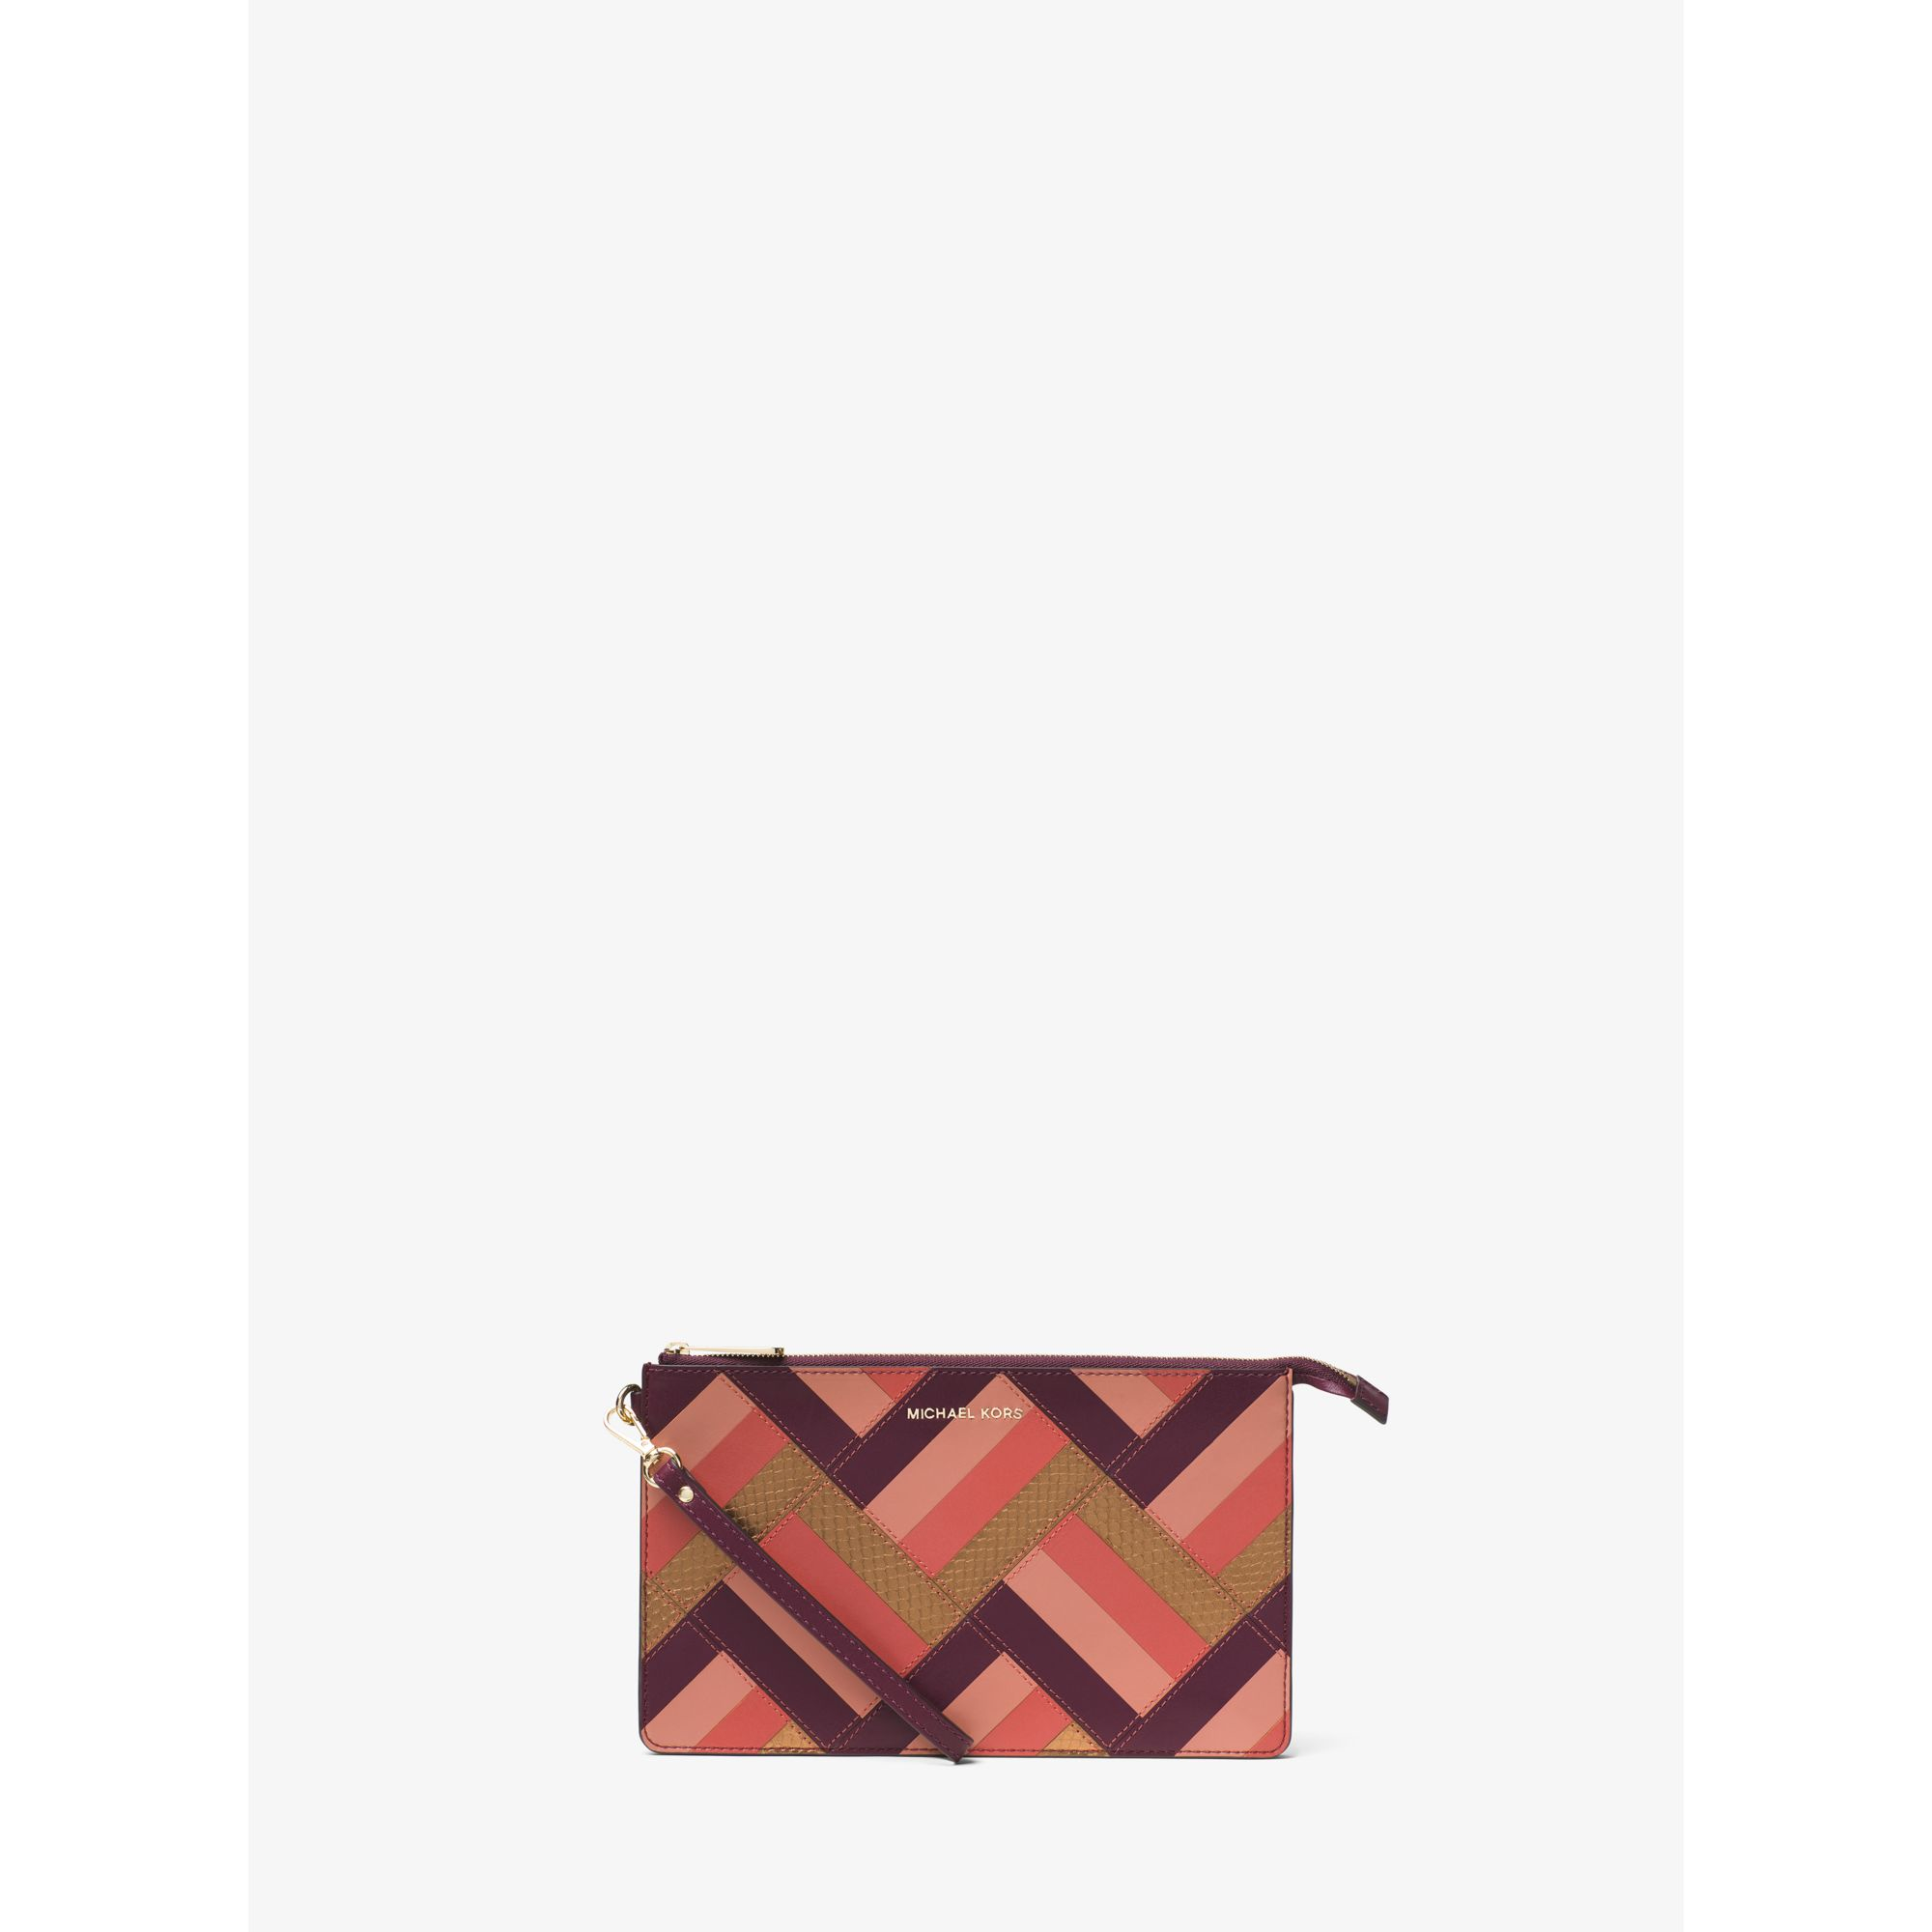 a36cde3574d8 Lyst - Michael Kors Large Marquetry Patchwork Leather Wristlet